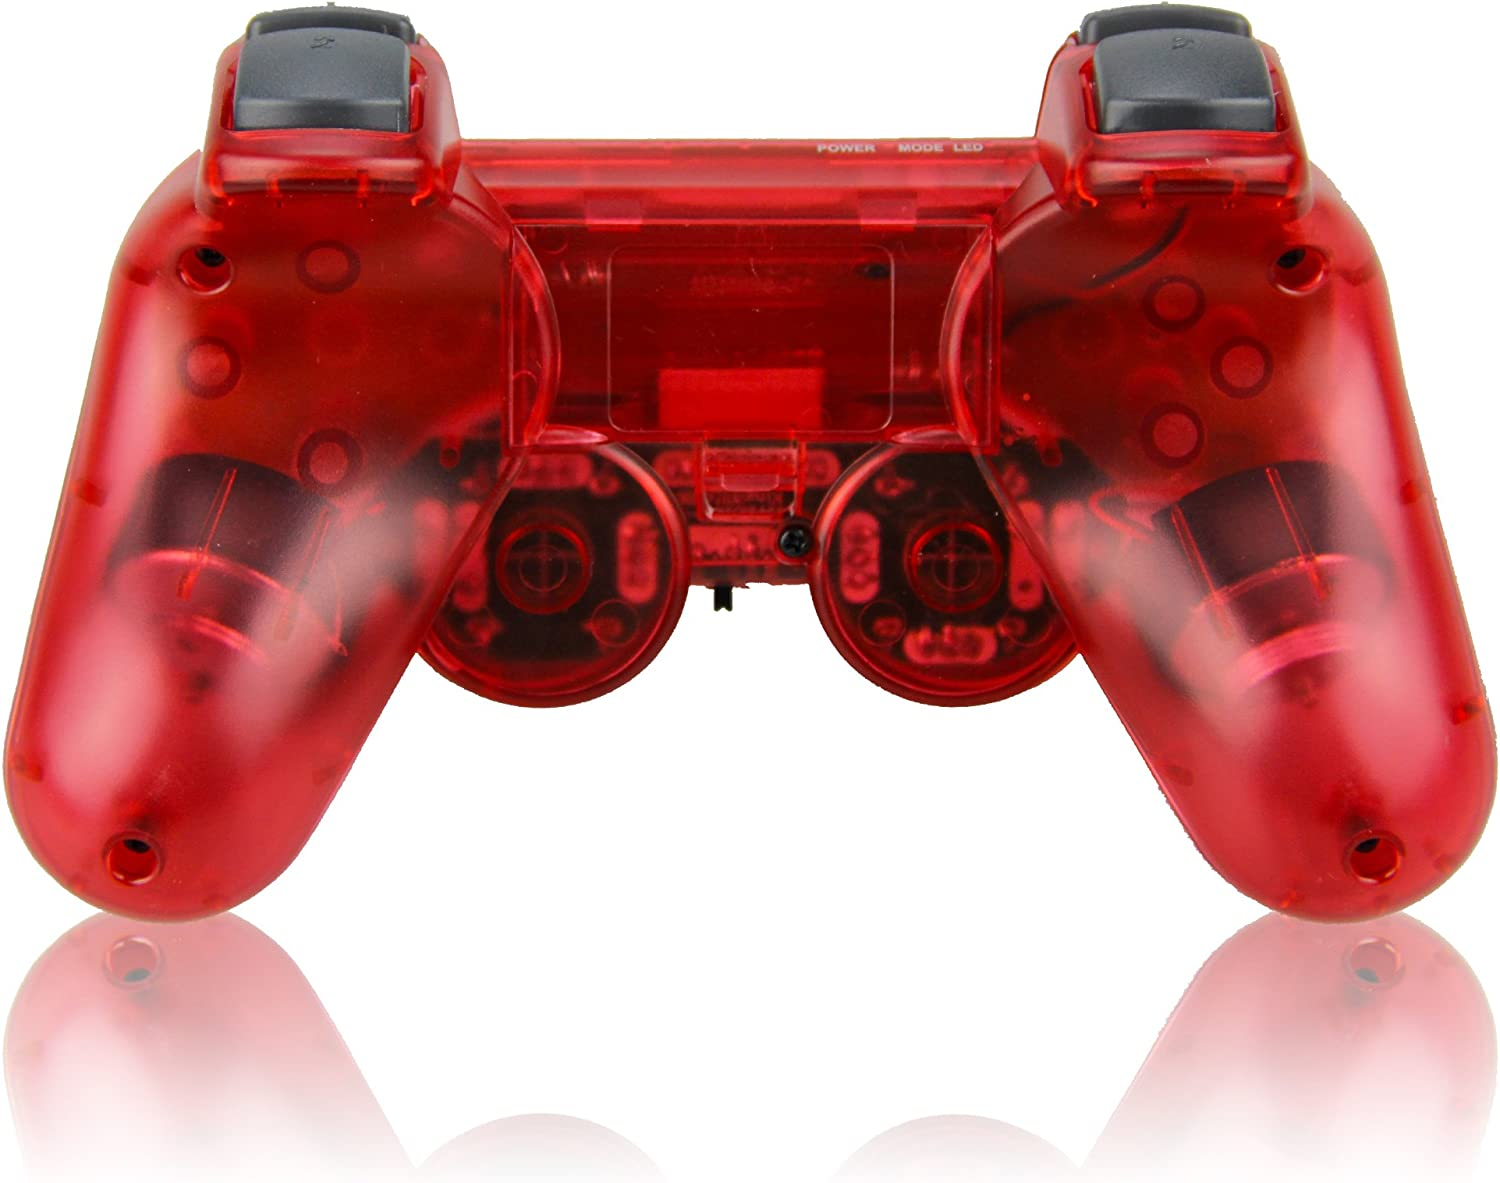 Amazon.com: 2pcs Pack Wireless PS2 Game Controller, Double ...